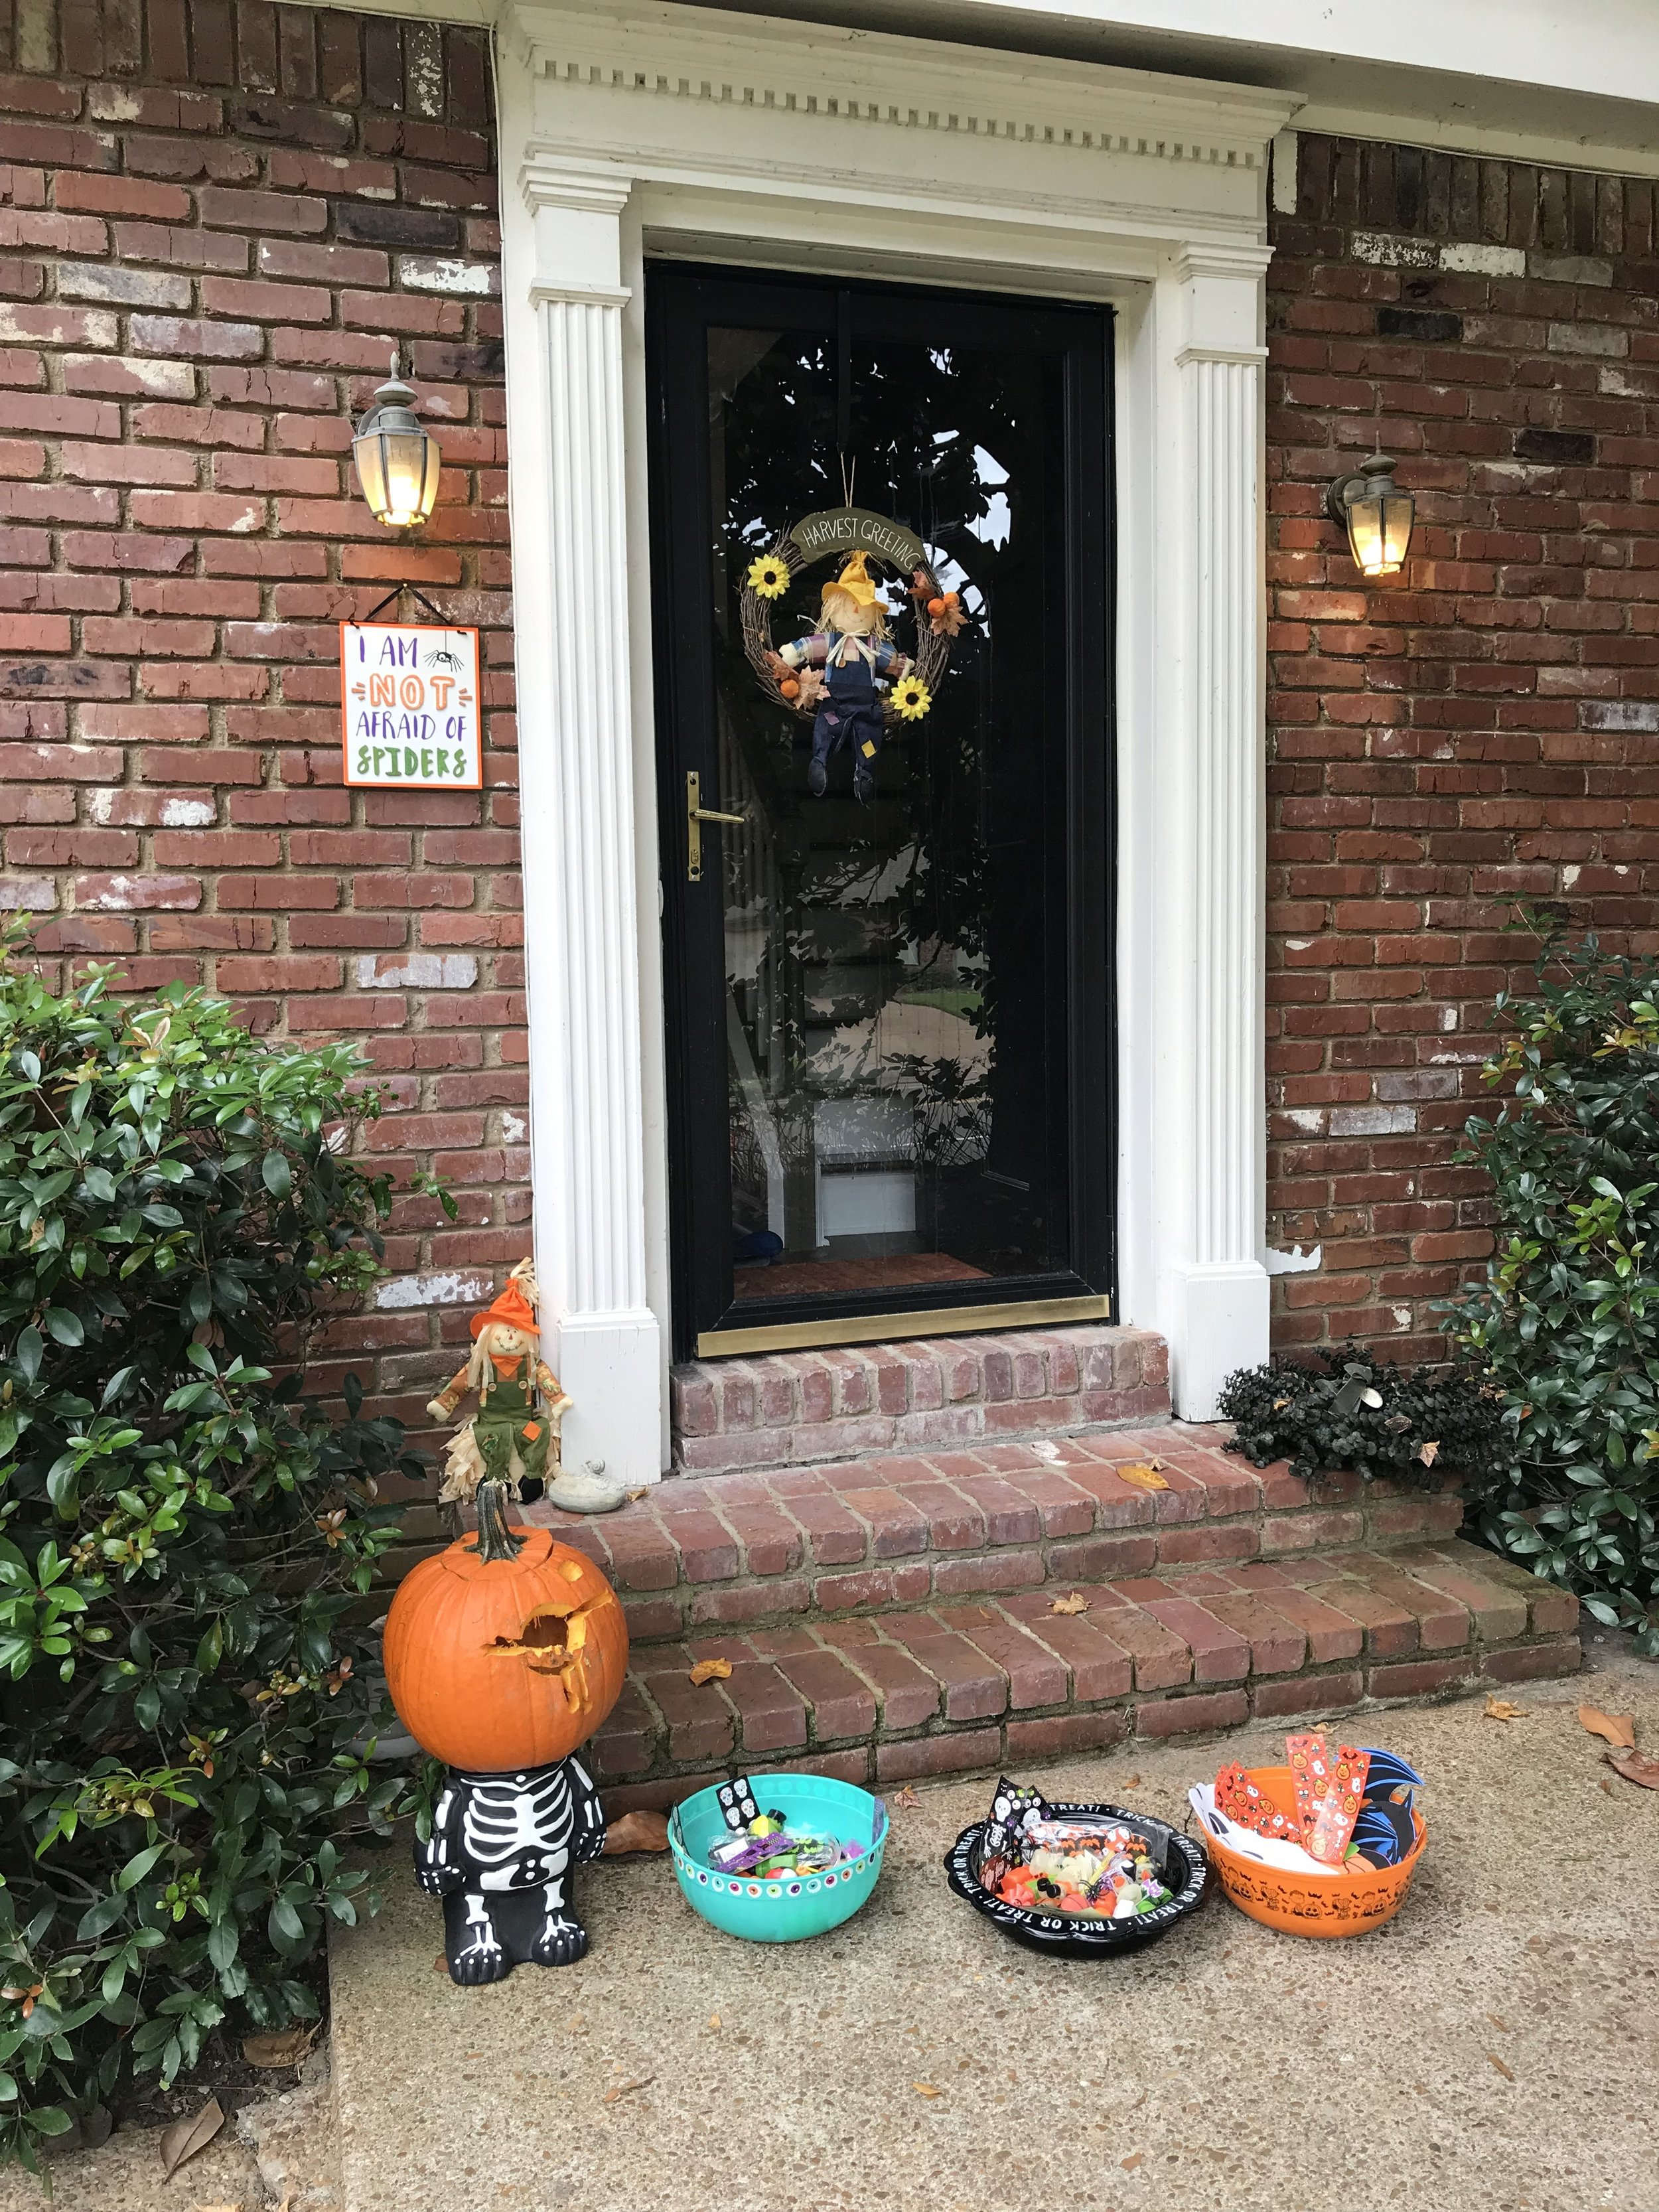 Halloween safe for food allergies - no sugar here! Bubbles, tattoos, trinkets & tricks